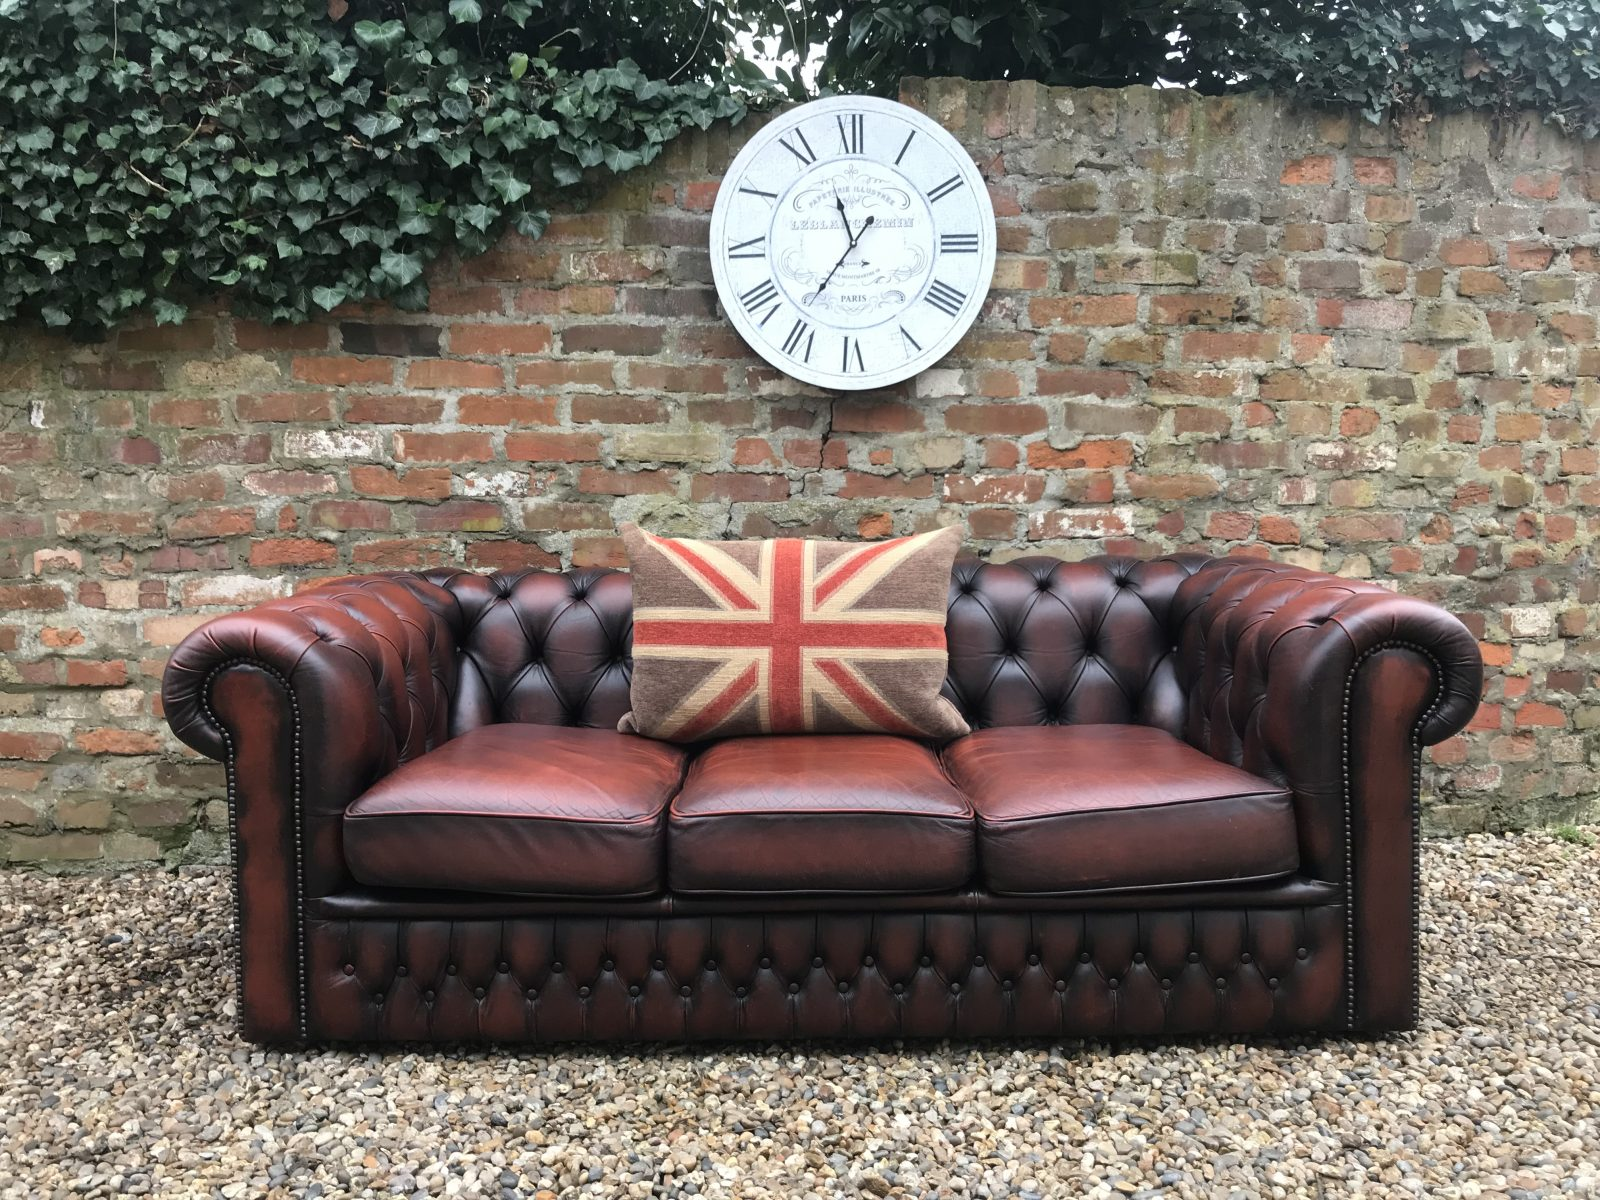 Old English Rustic Brown Chesterfield Sofa.